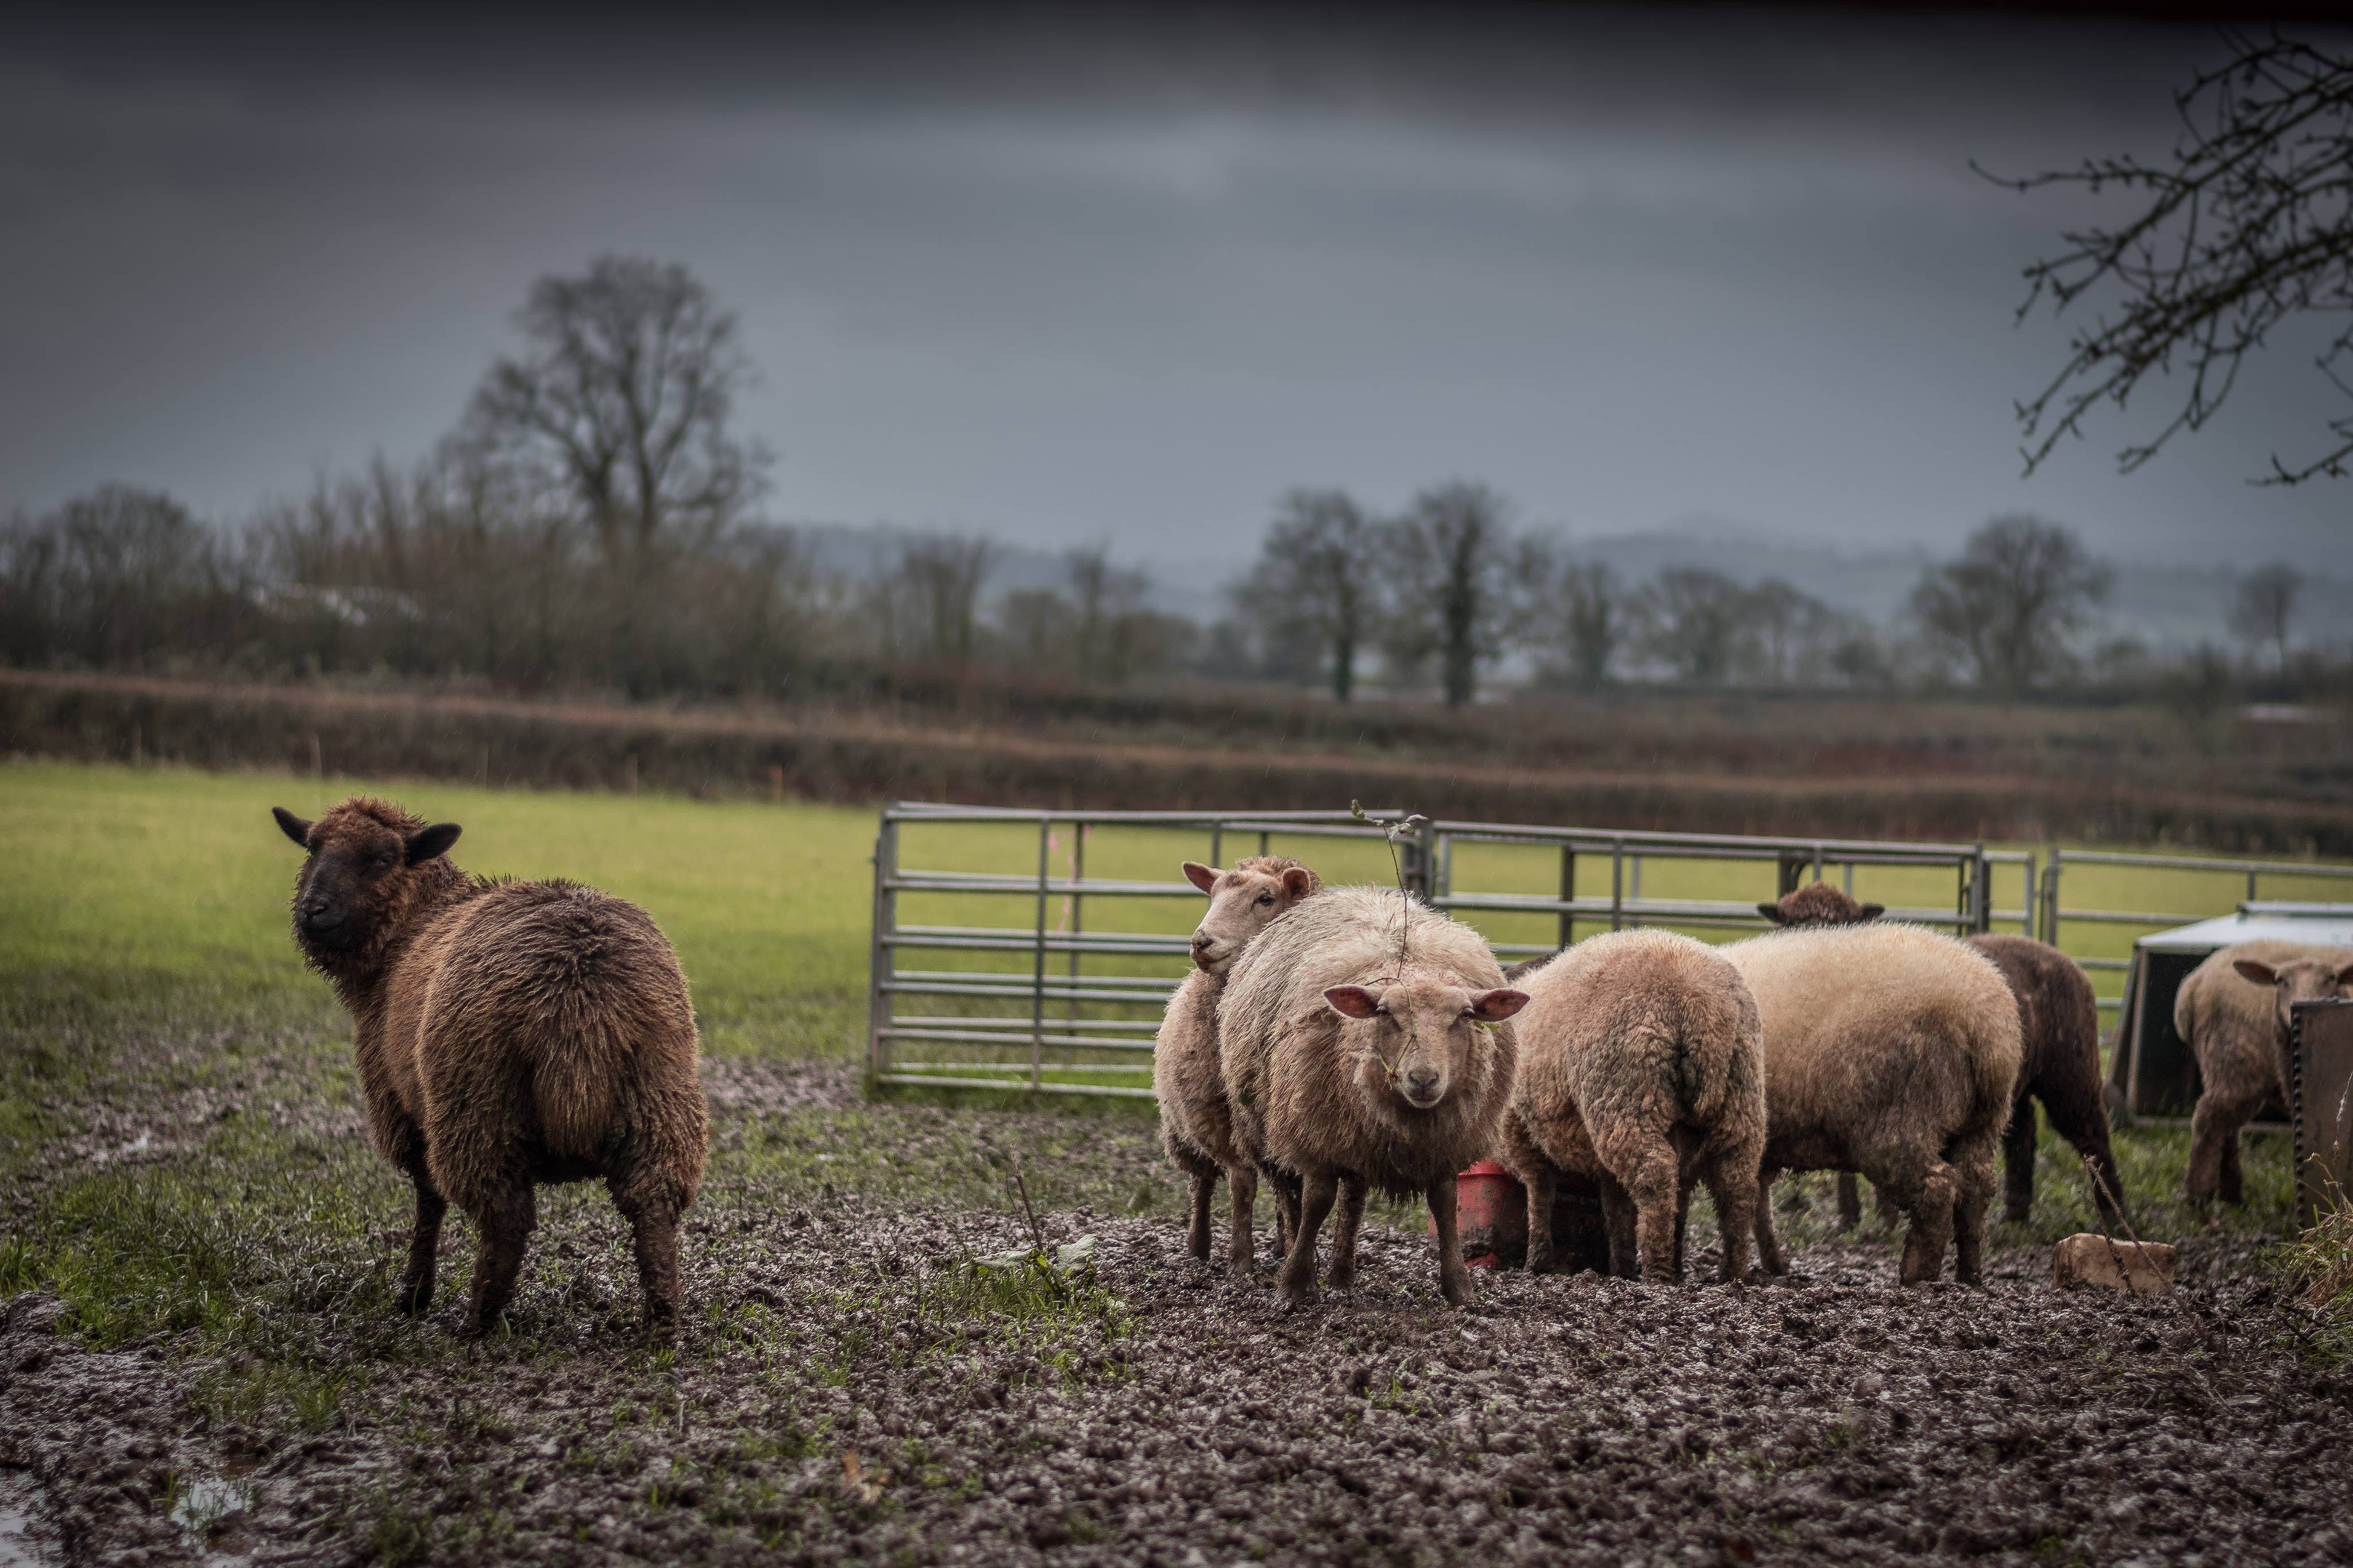 Herd of Brown and Beige Sheep on Field Under Gray Sky